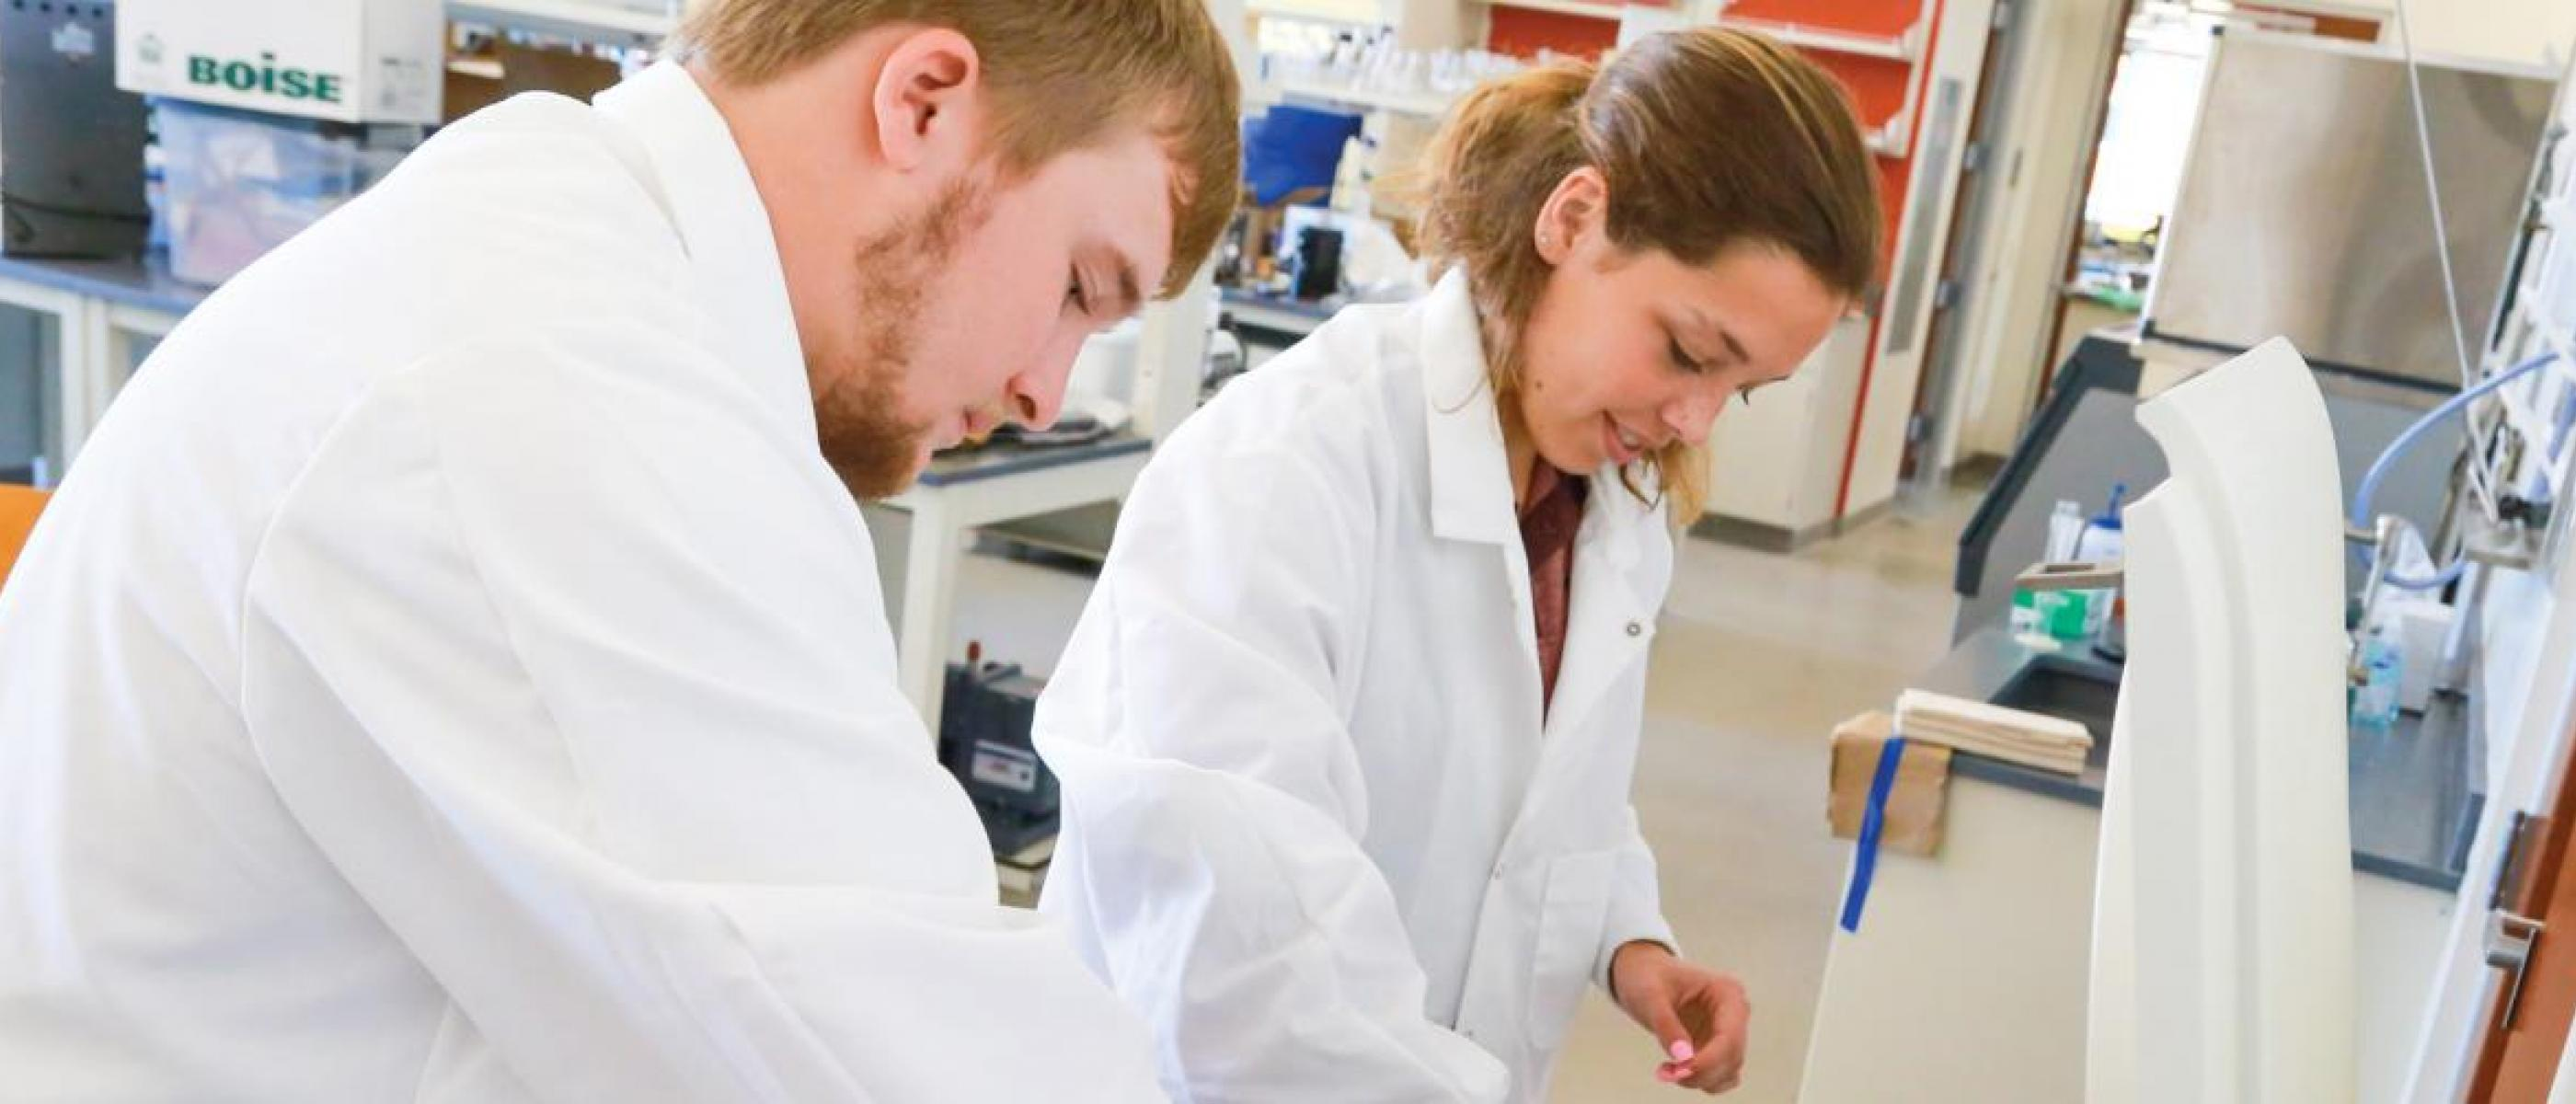 Male and female students working in a lab.